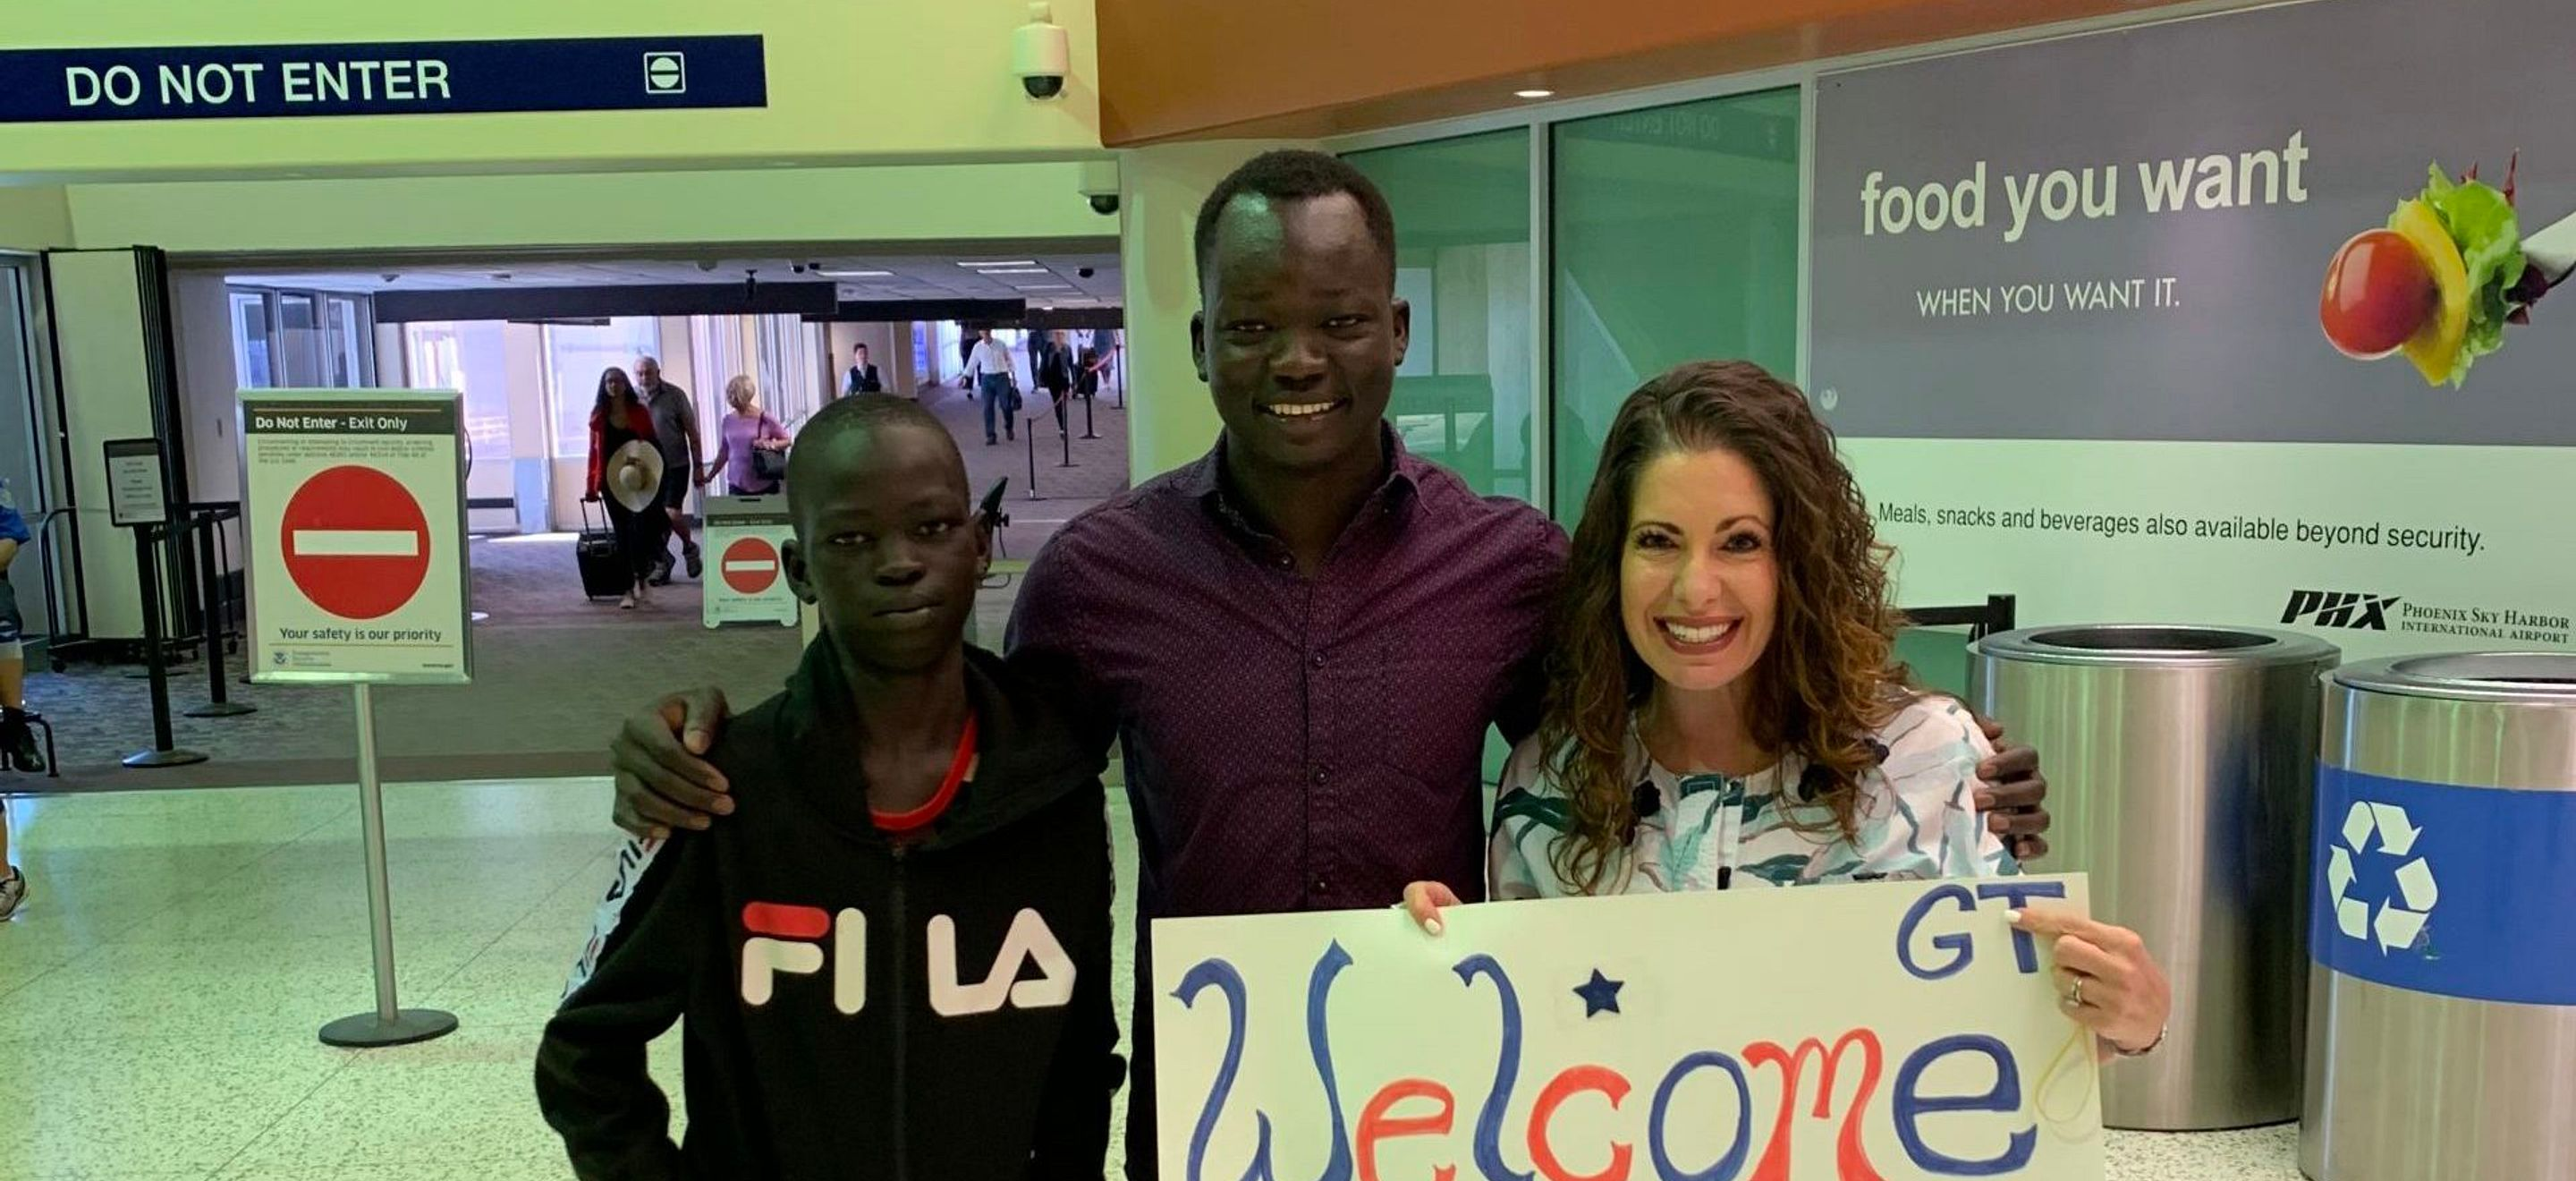 "A teenage boy and a young man with deep black skin and closely cropped black hair (brothers who have just been reunited after years separated by harsh immigration policies) stand with a white woman with wavy, shoulder-length brown hair in an airport arrivals corridor. The woman is holding a hand-written poster that says ""Welcome"" with an American flag. The young man and the woman have big smiles on their faces, and the teenage boy has a stoic look on his face. The teenage boy is wearing a black zip-up FILA hoodie, the young man wears a plum colored button-down shirt, and the woman wears a white blouse with teal and gray swirly patterns on it."